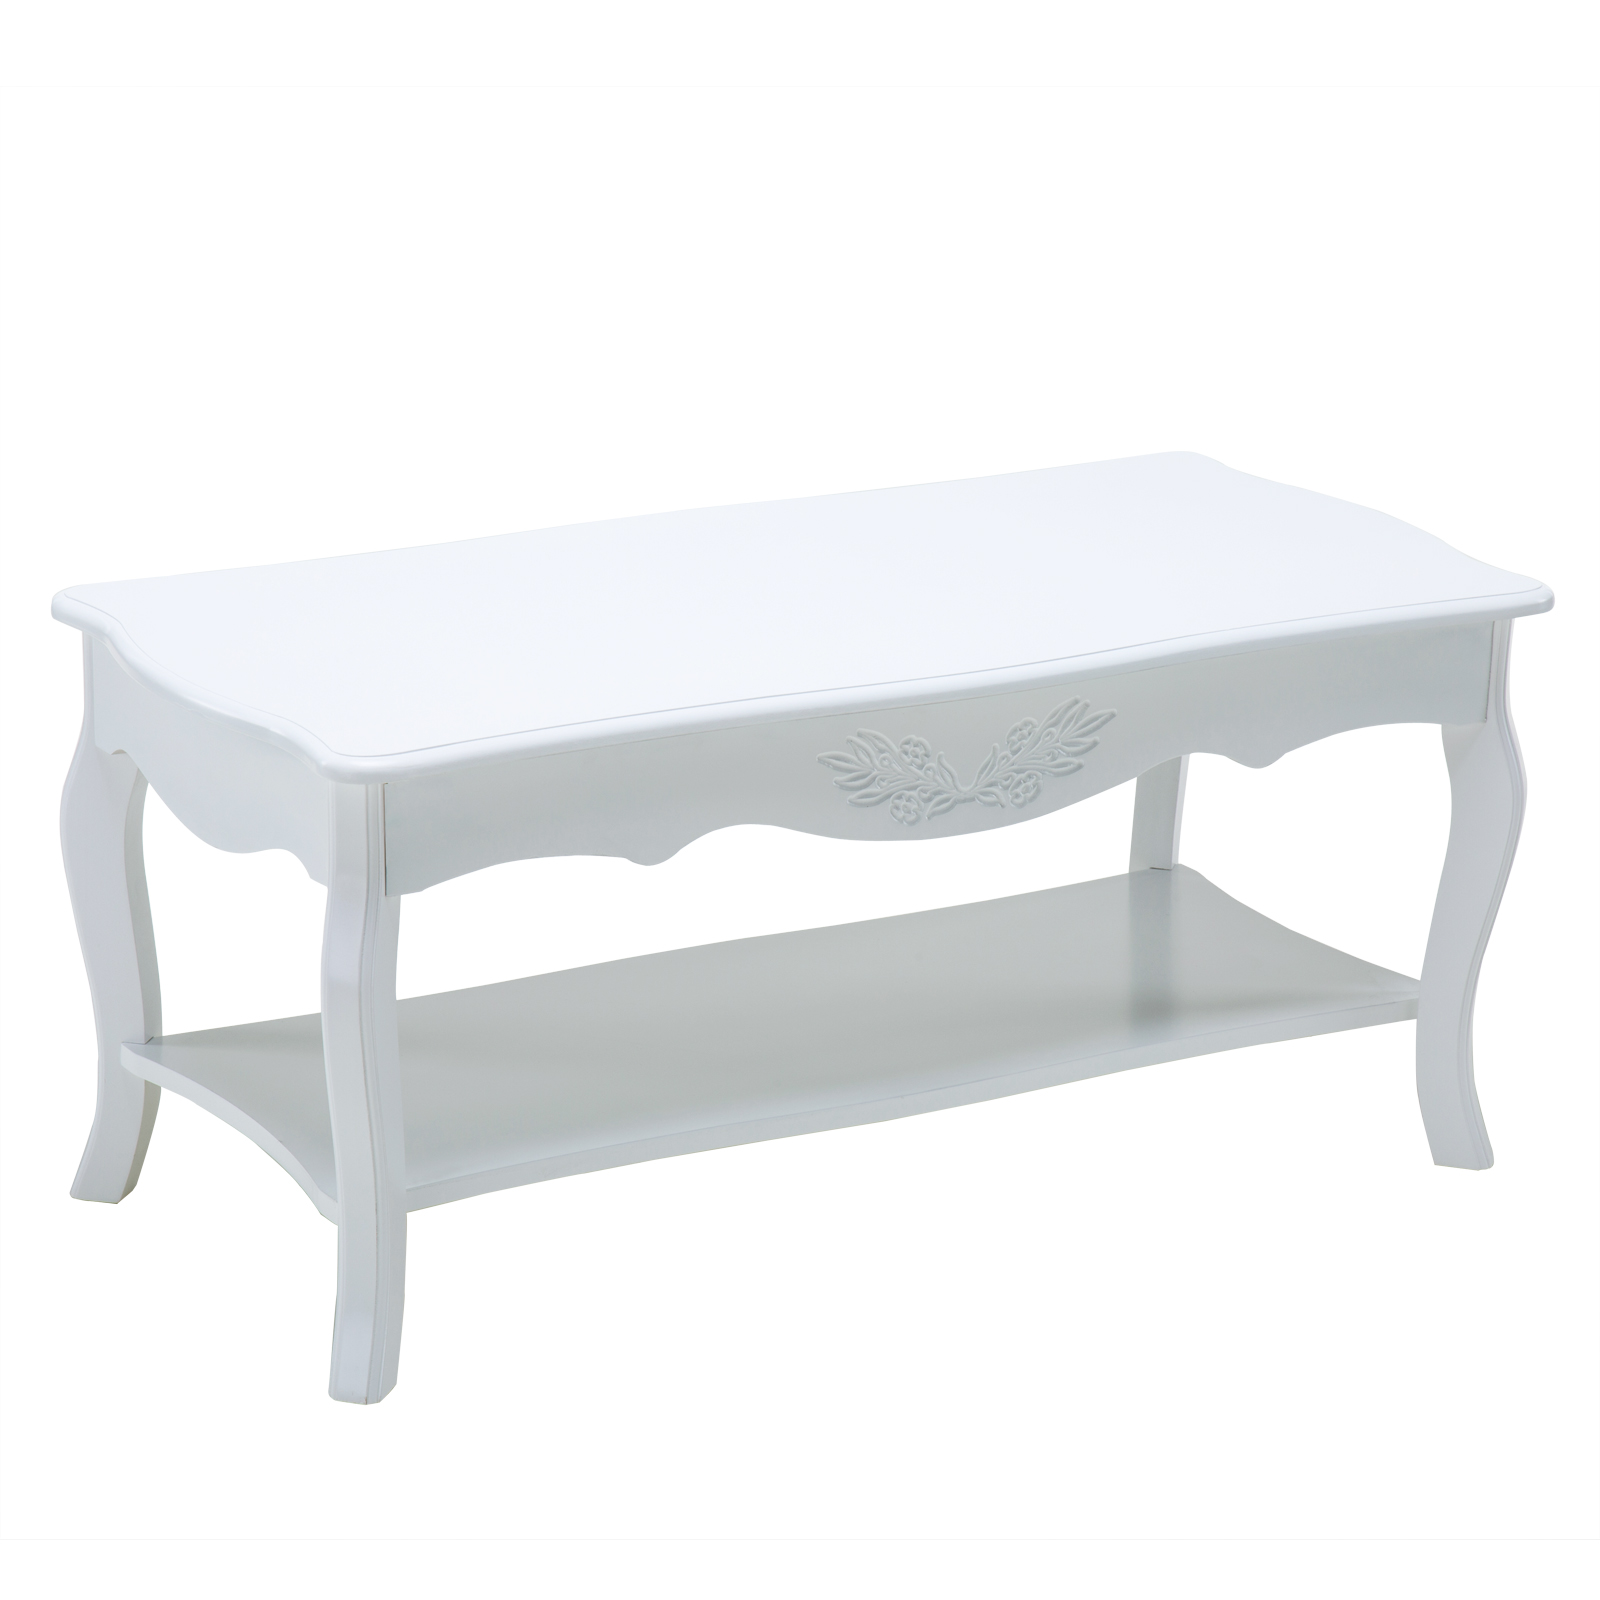 Shabby Chic Corner Coffee Table: Wood Shabby Chic Cottage Coffee Table W/Bottom Shelf